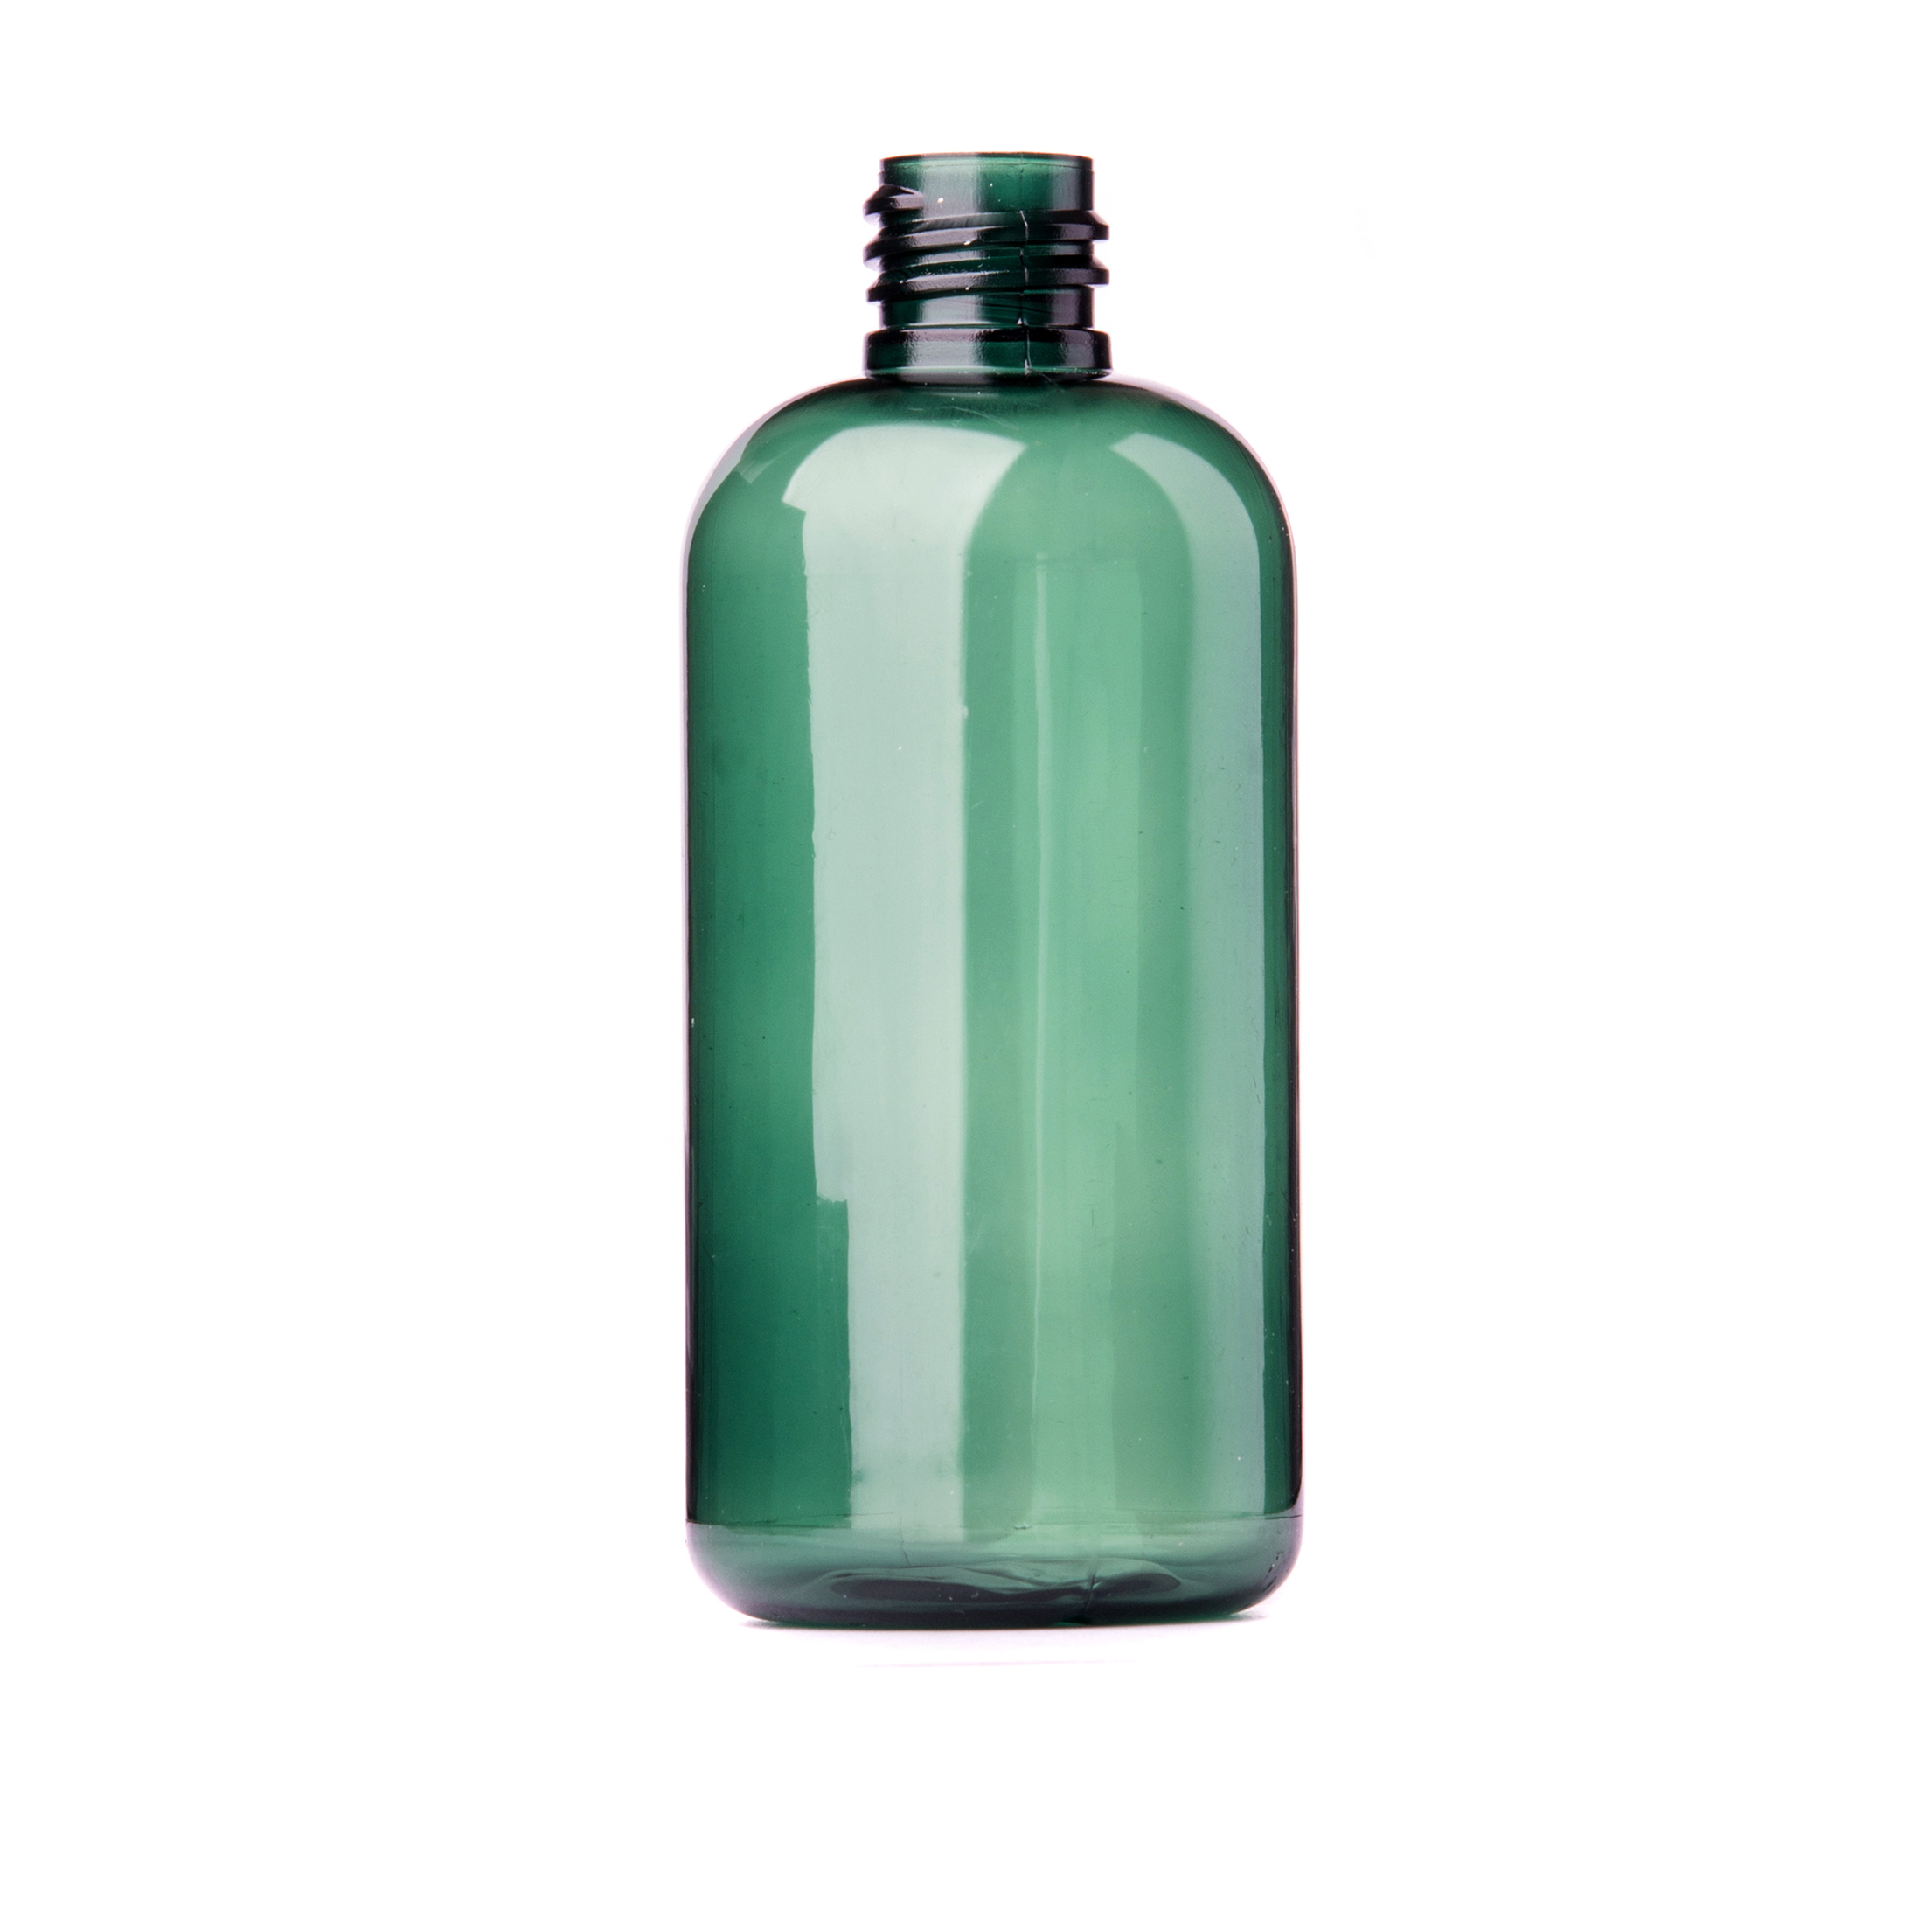 Green Small Bottle 2551.26 Kb